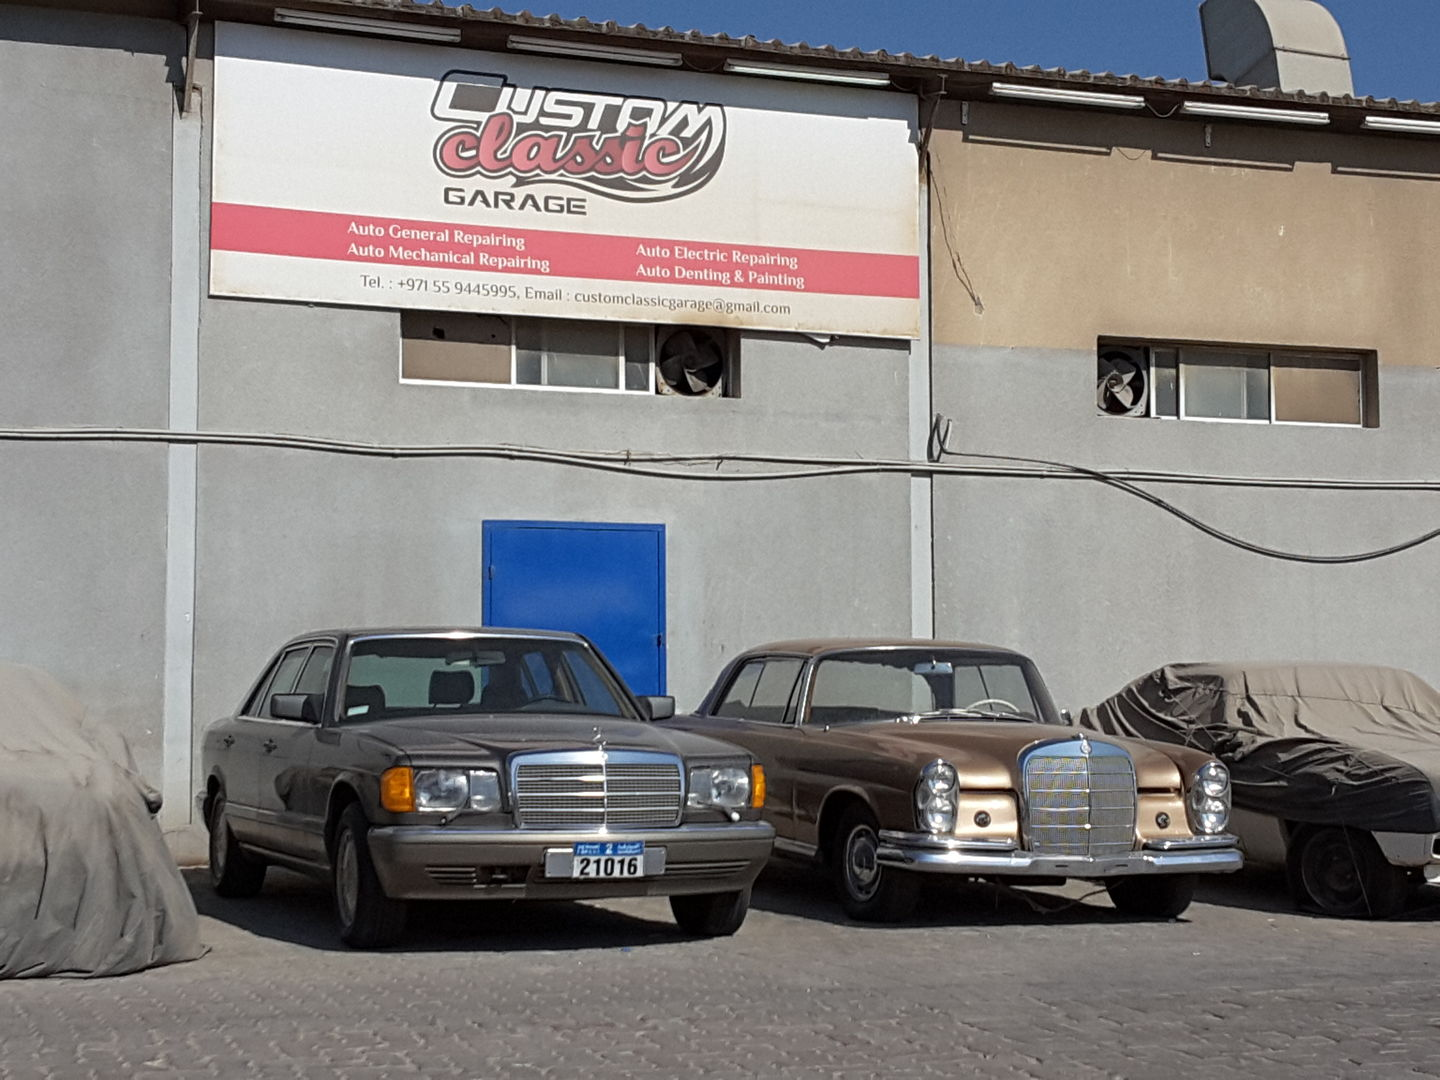 HiDubai-business-custom-classic-garage-transport-vehicle-services-car-assistance-repair-al-quoz-industrial-1-dubai-2